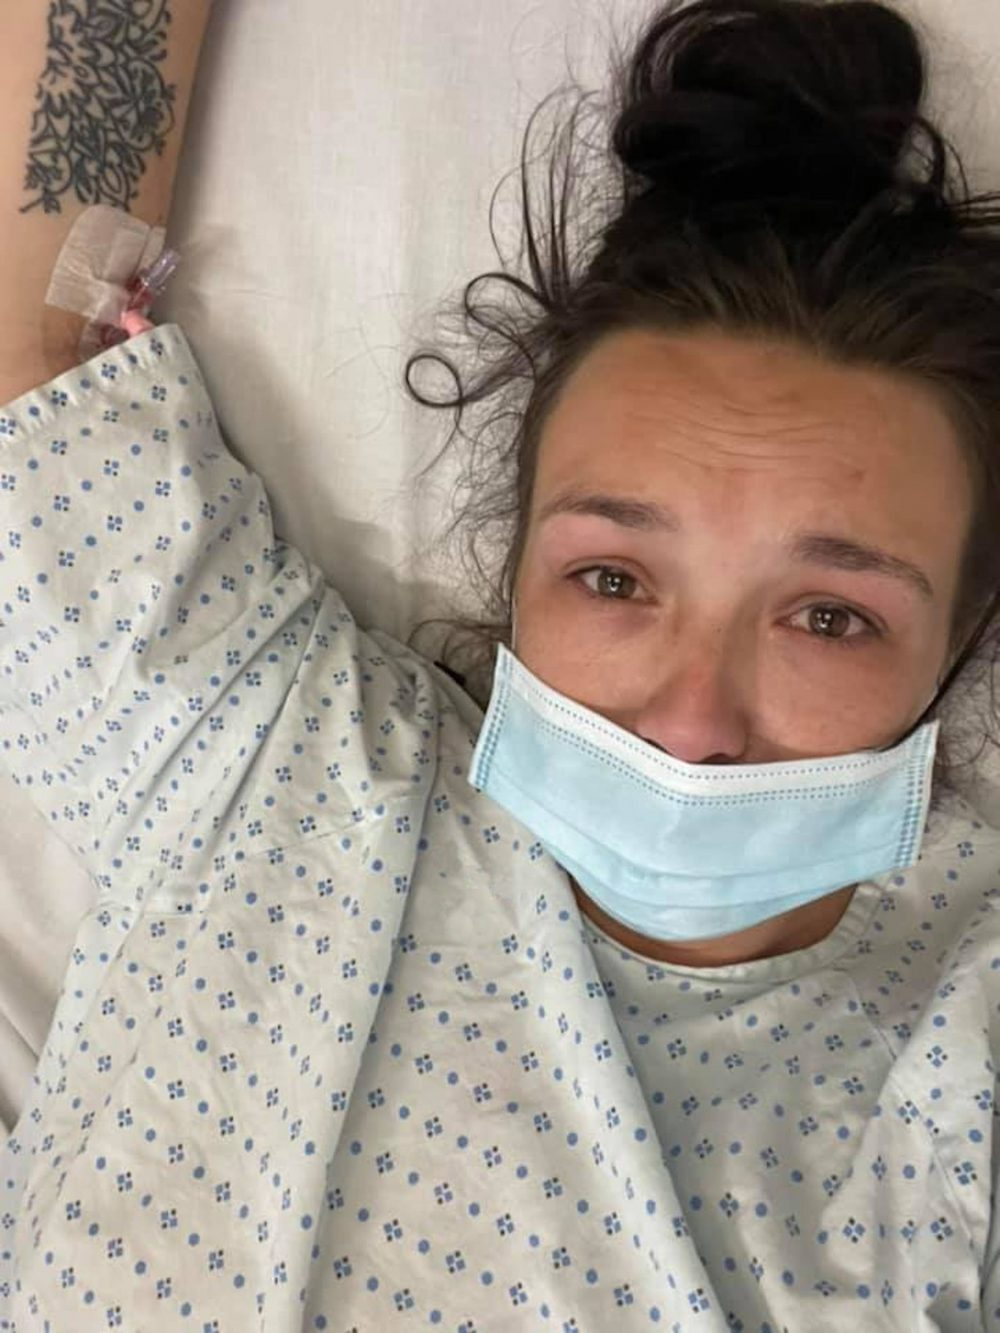 Jade Michealla in the hospital | Food and Drink News UK